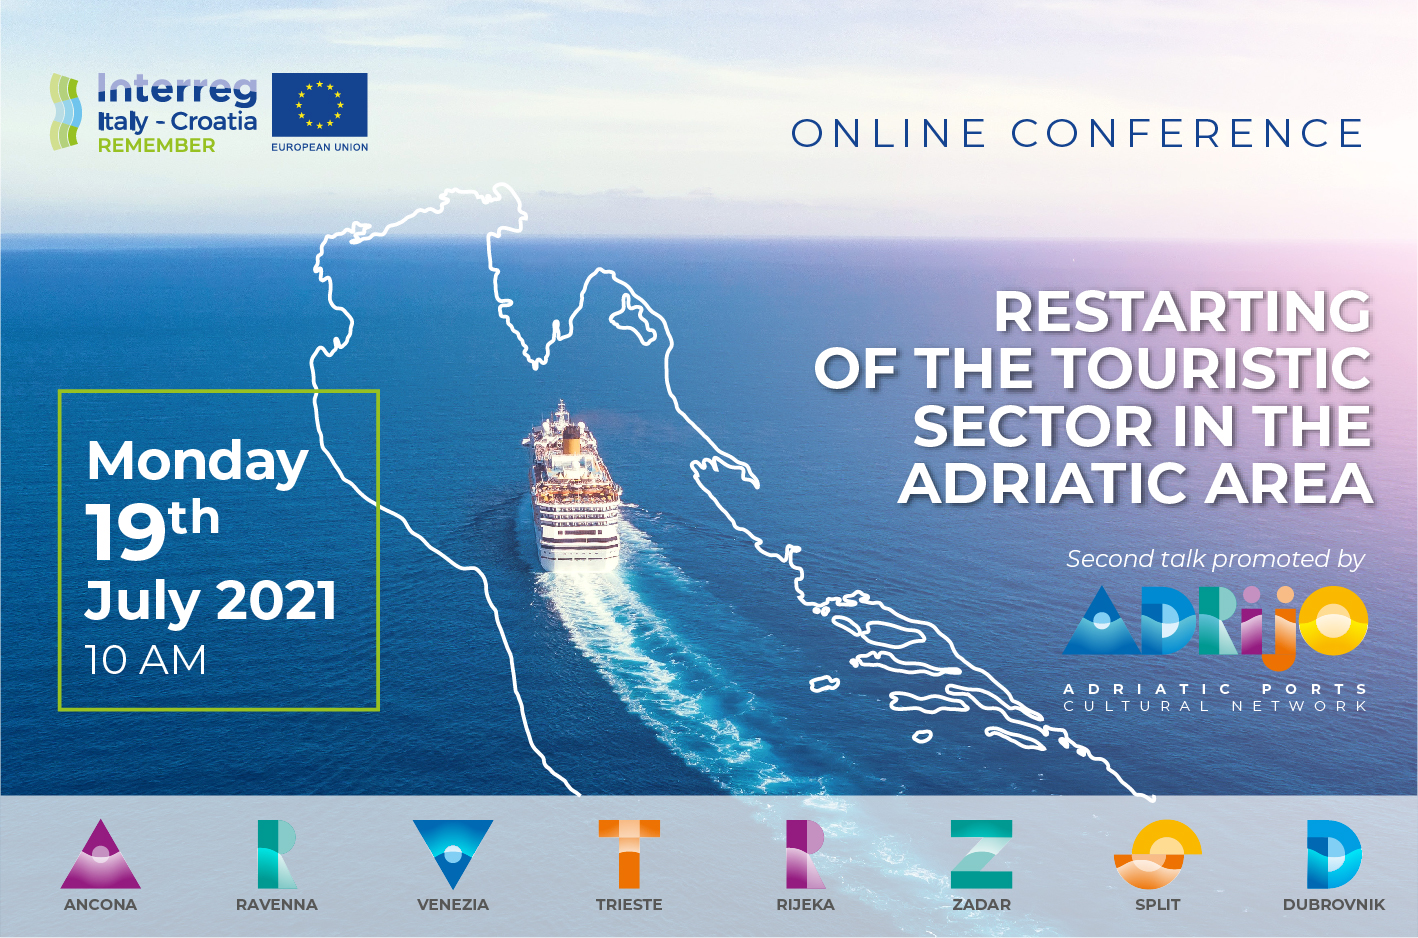 RESTARTING OF THE TOURISTIC SECTOR IN THE ADRIATIC AREA